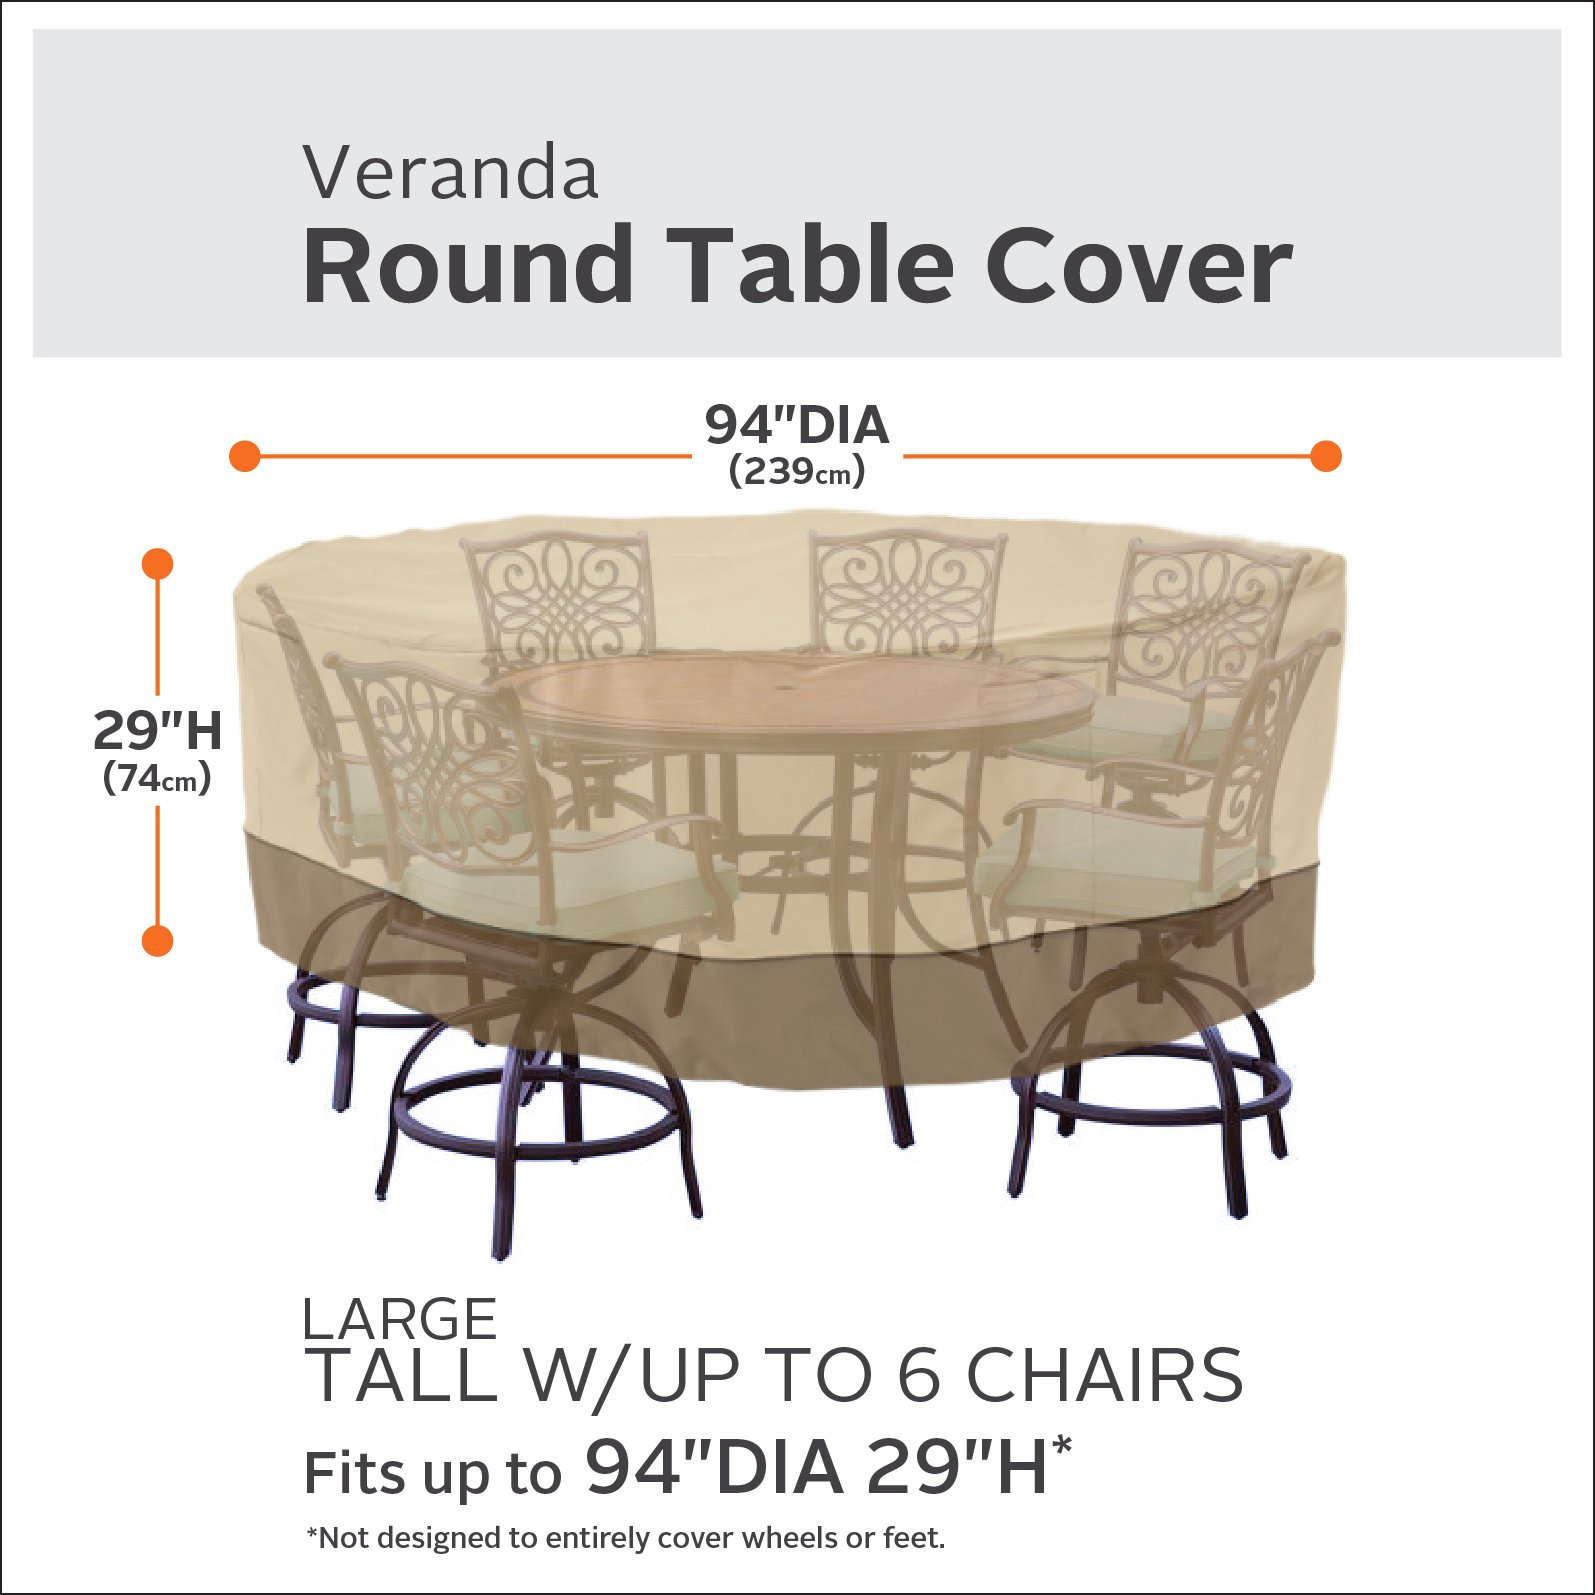 Classic Accessories Veranda Tall Round Patio Table & Chairs Cover, Large by Classic Accessories (Image #2)